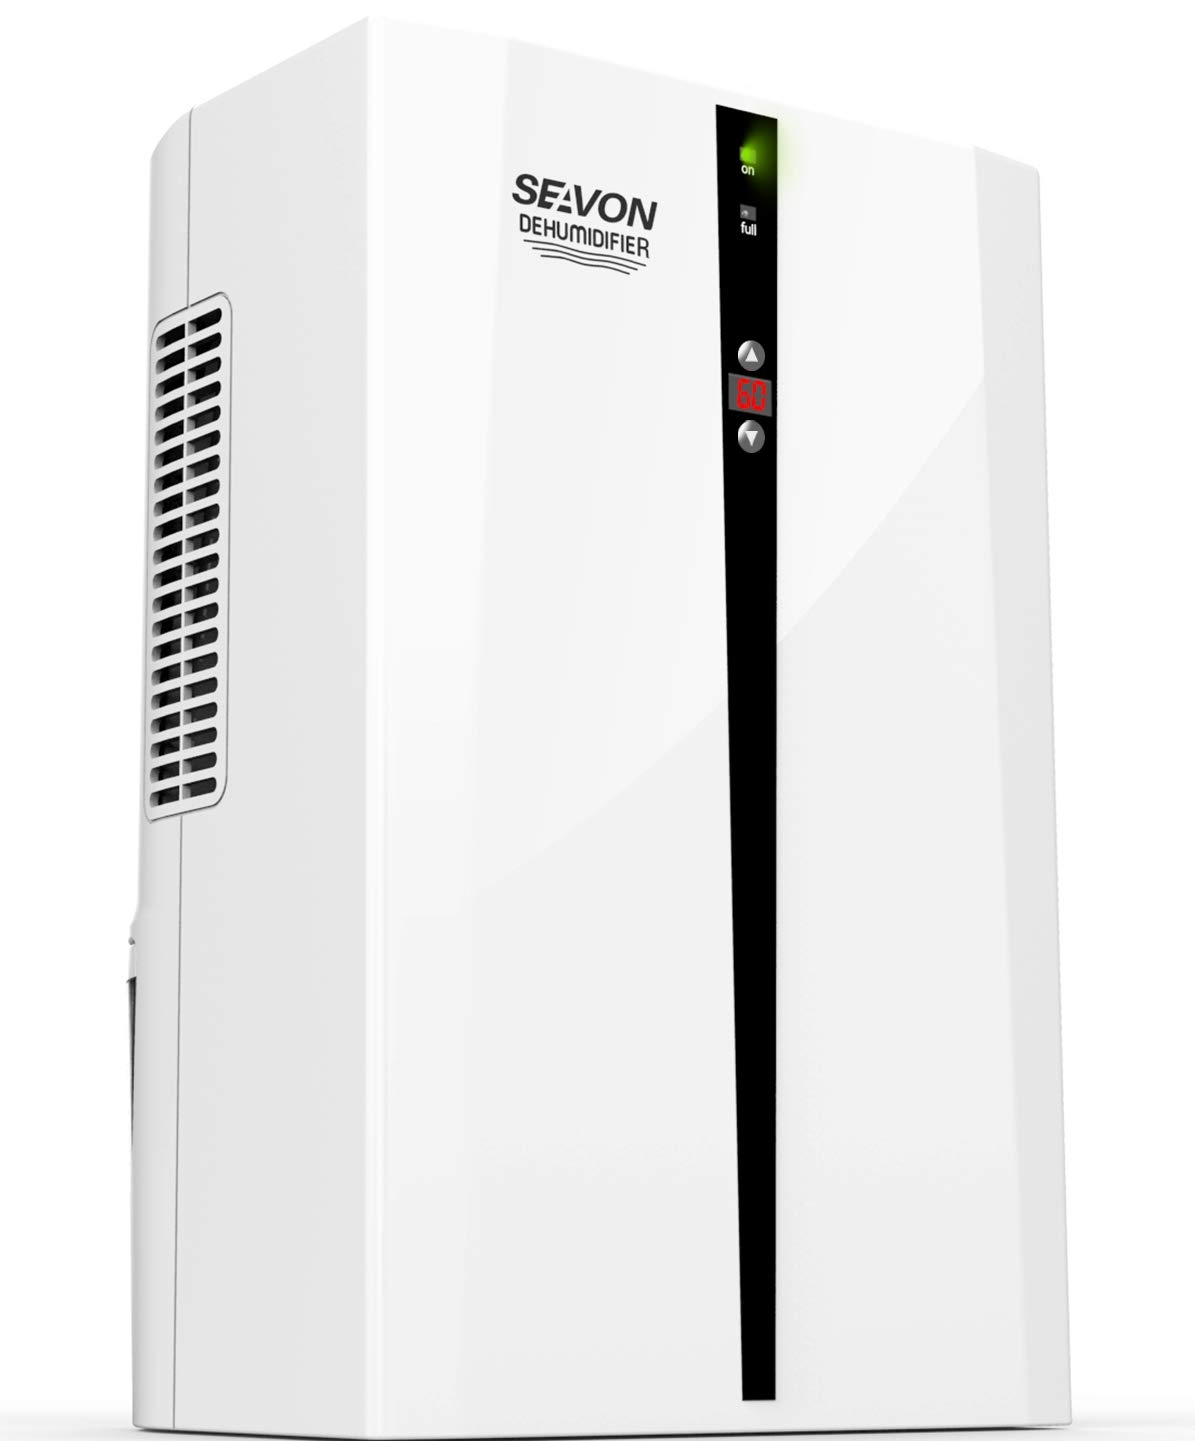 SEAVON Electric Dehumidifier for Home, 2200 Cubic Feet(270 sq ft) MD-898 2000ml (68 oz) Capacity, Quiet Safe Dehumidifiers for Apartment, Bedroom, Bathroom, RV, Closet, Auto Shut Off by SEAVON